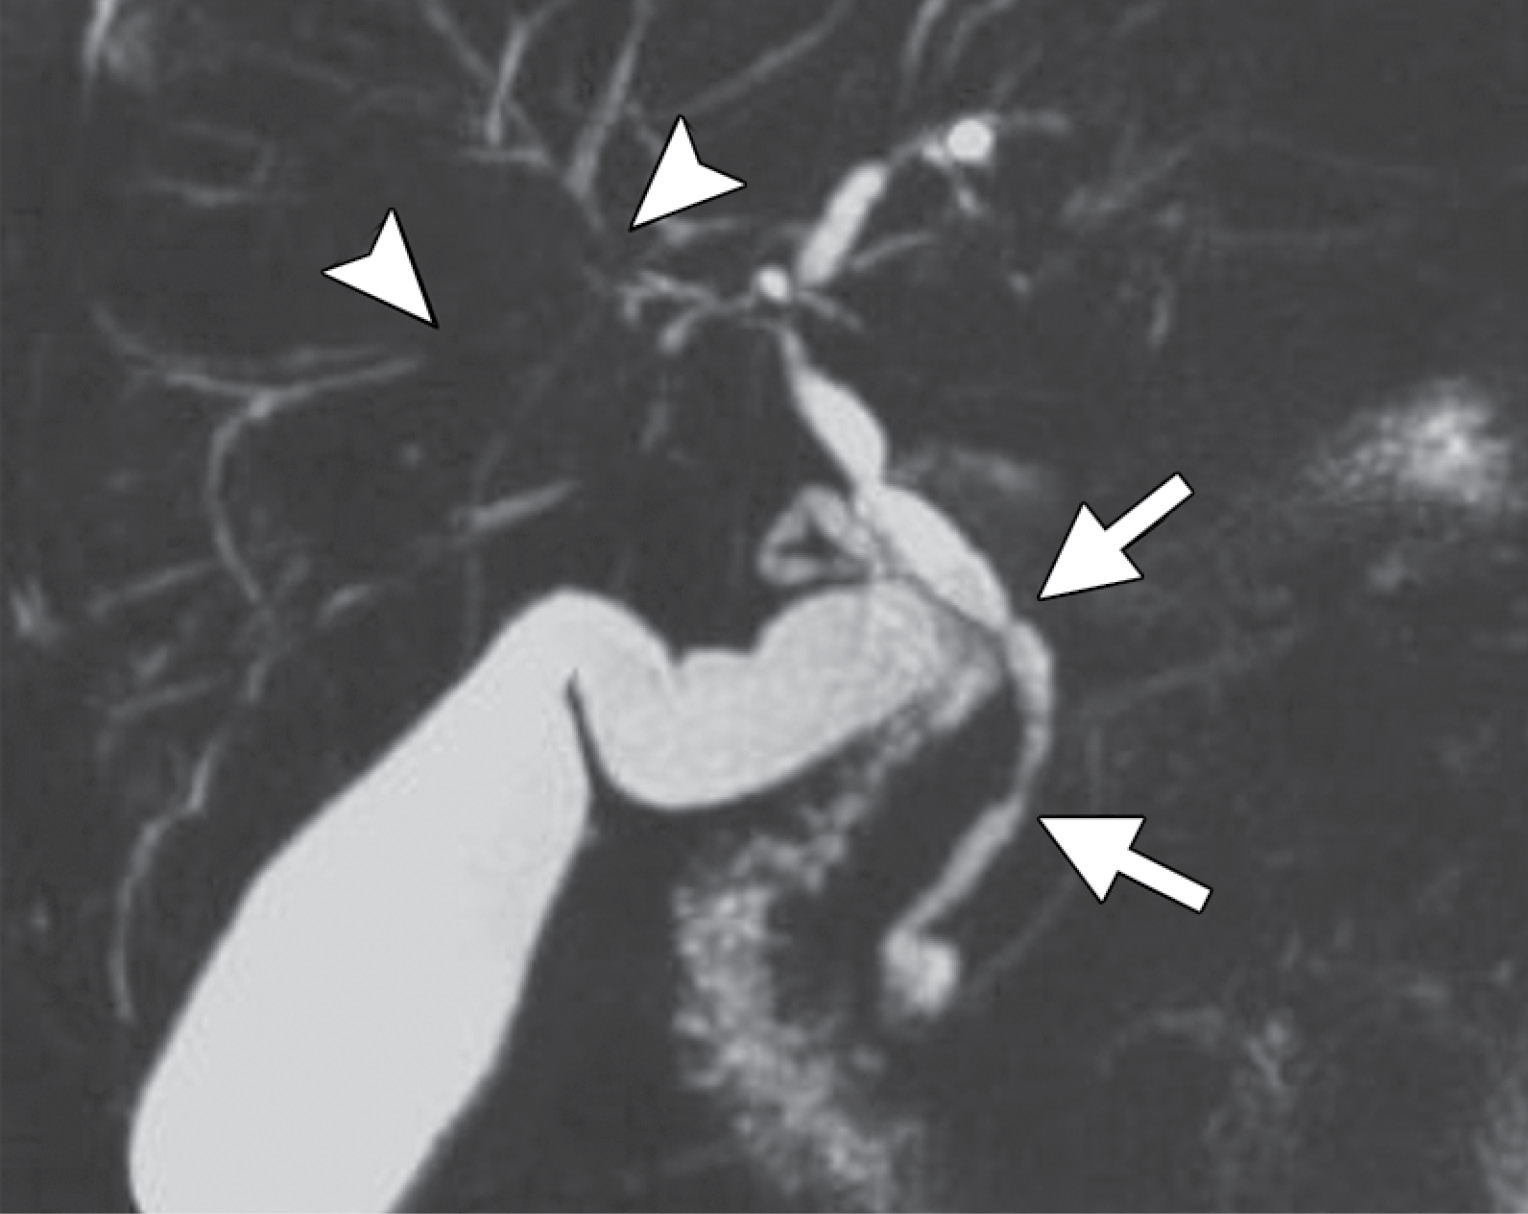 Primary sclerosing cholangitis in a 63-year-old man